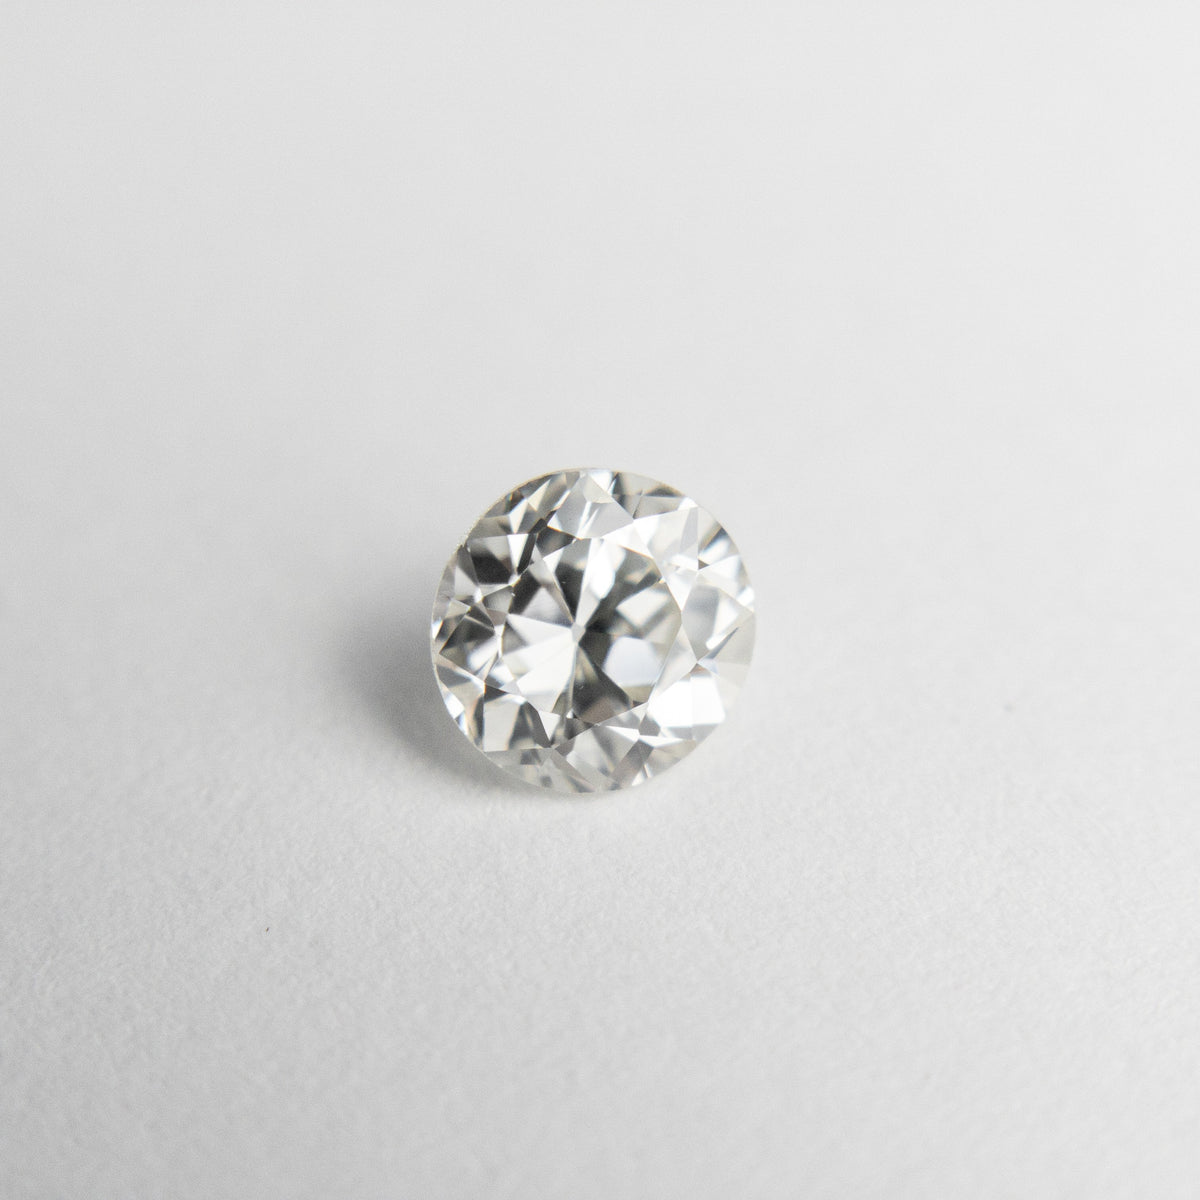 0.53ct 5.15x4.93x3.22mm GIA VS1 J Antique Old European Cut 18635-01